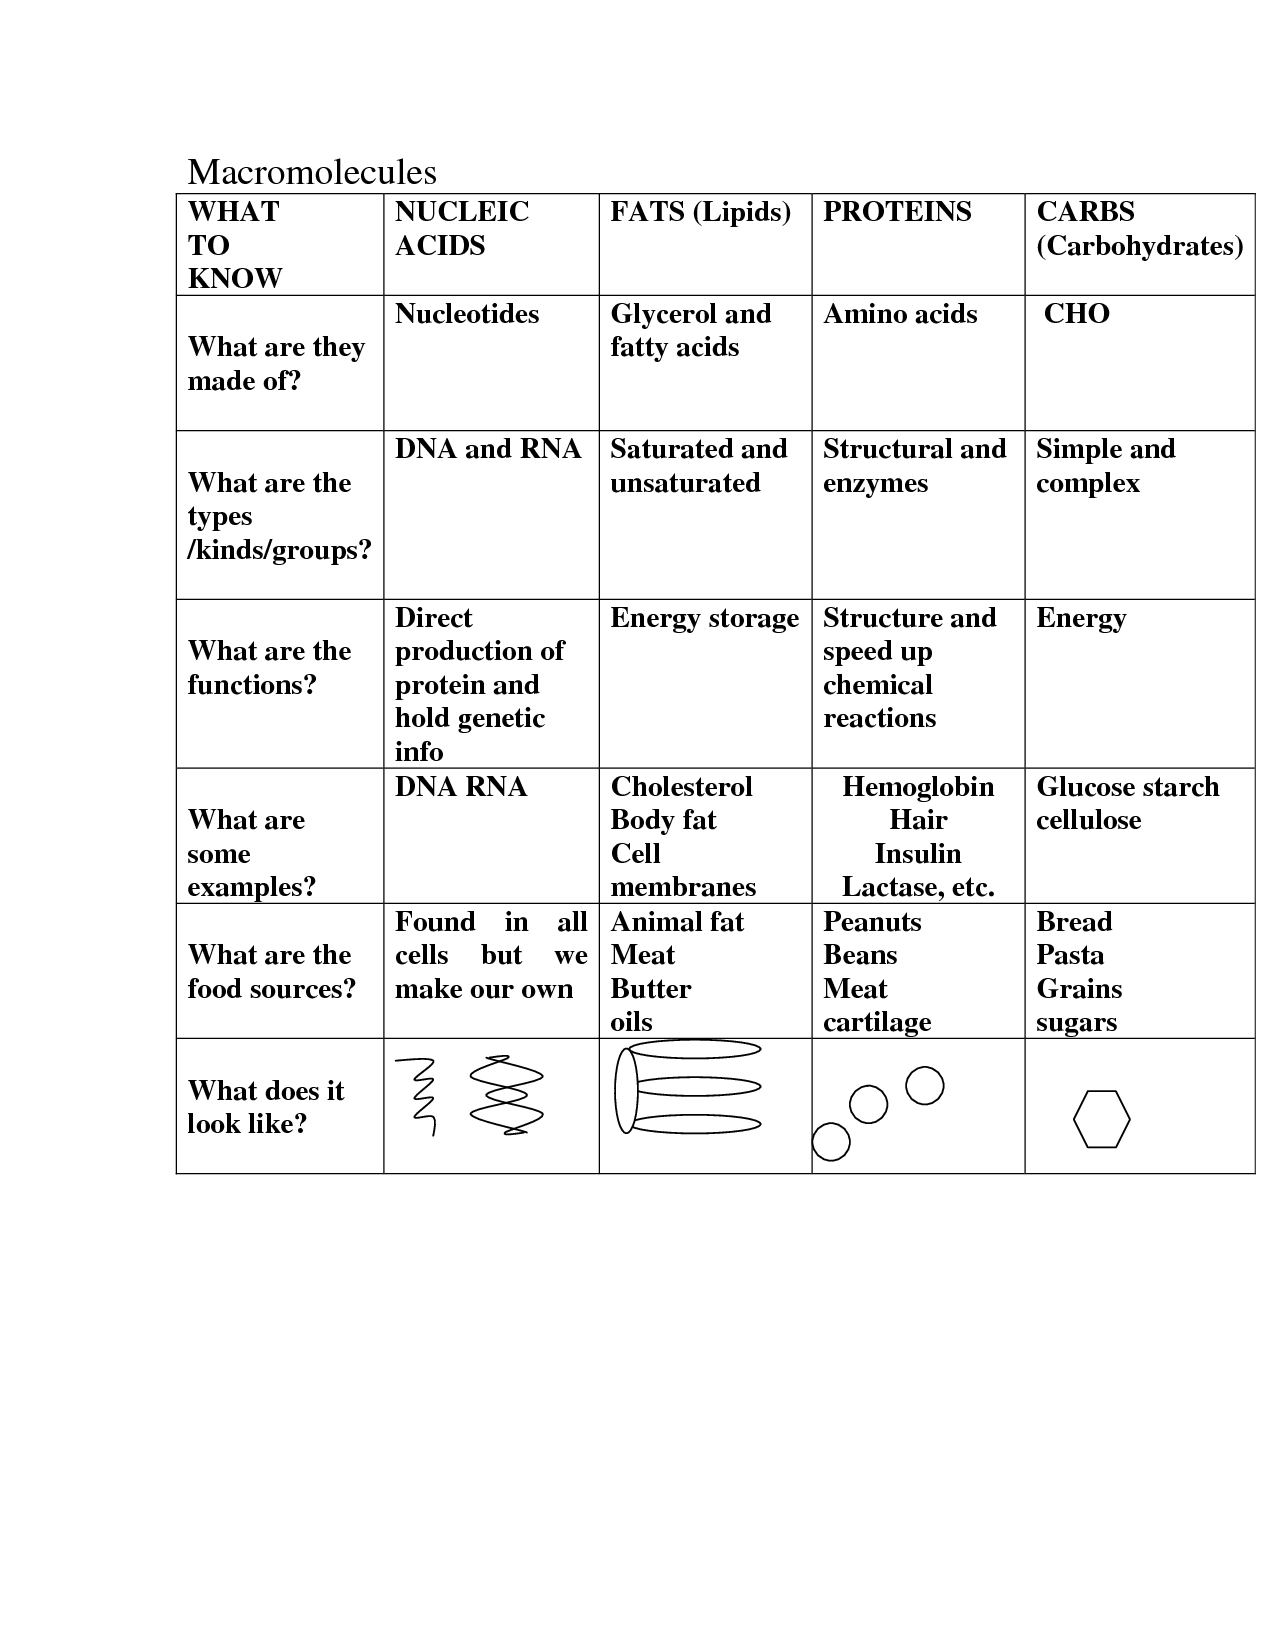 12 Best Images Of Biology Macromolecules Worksheets